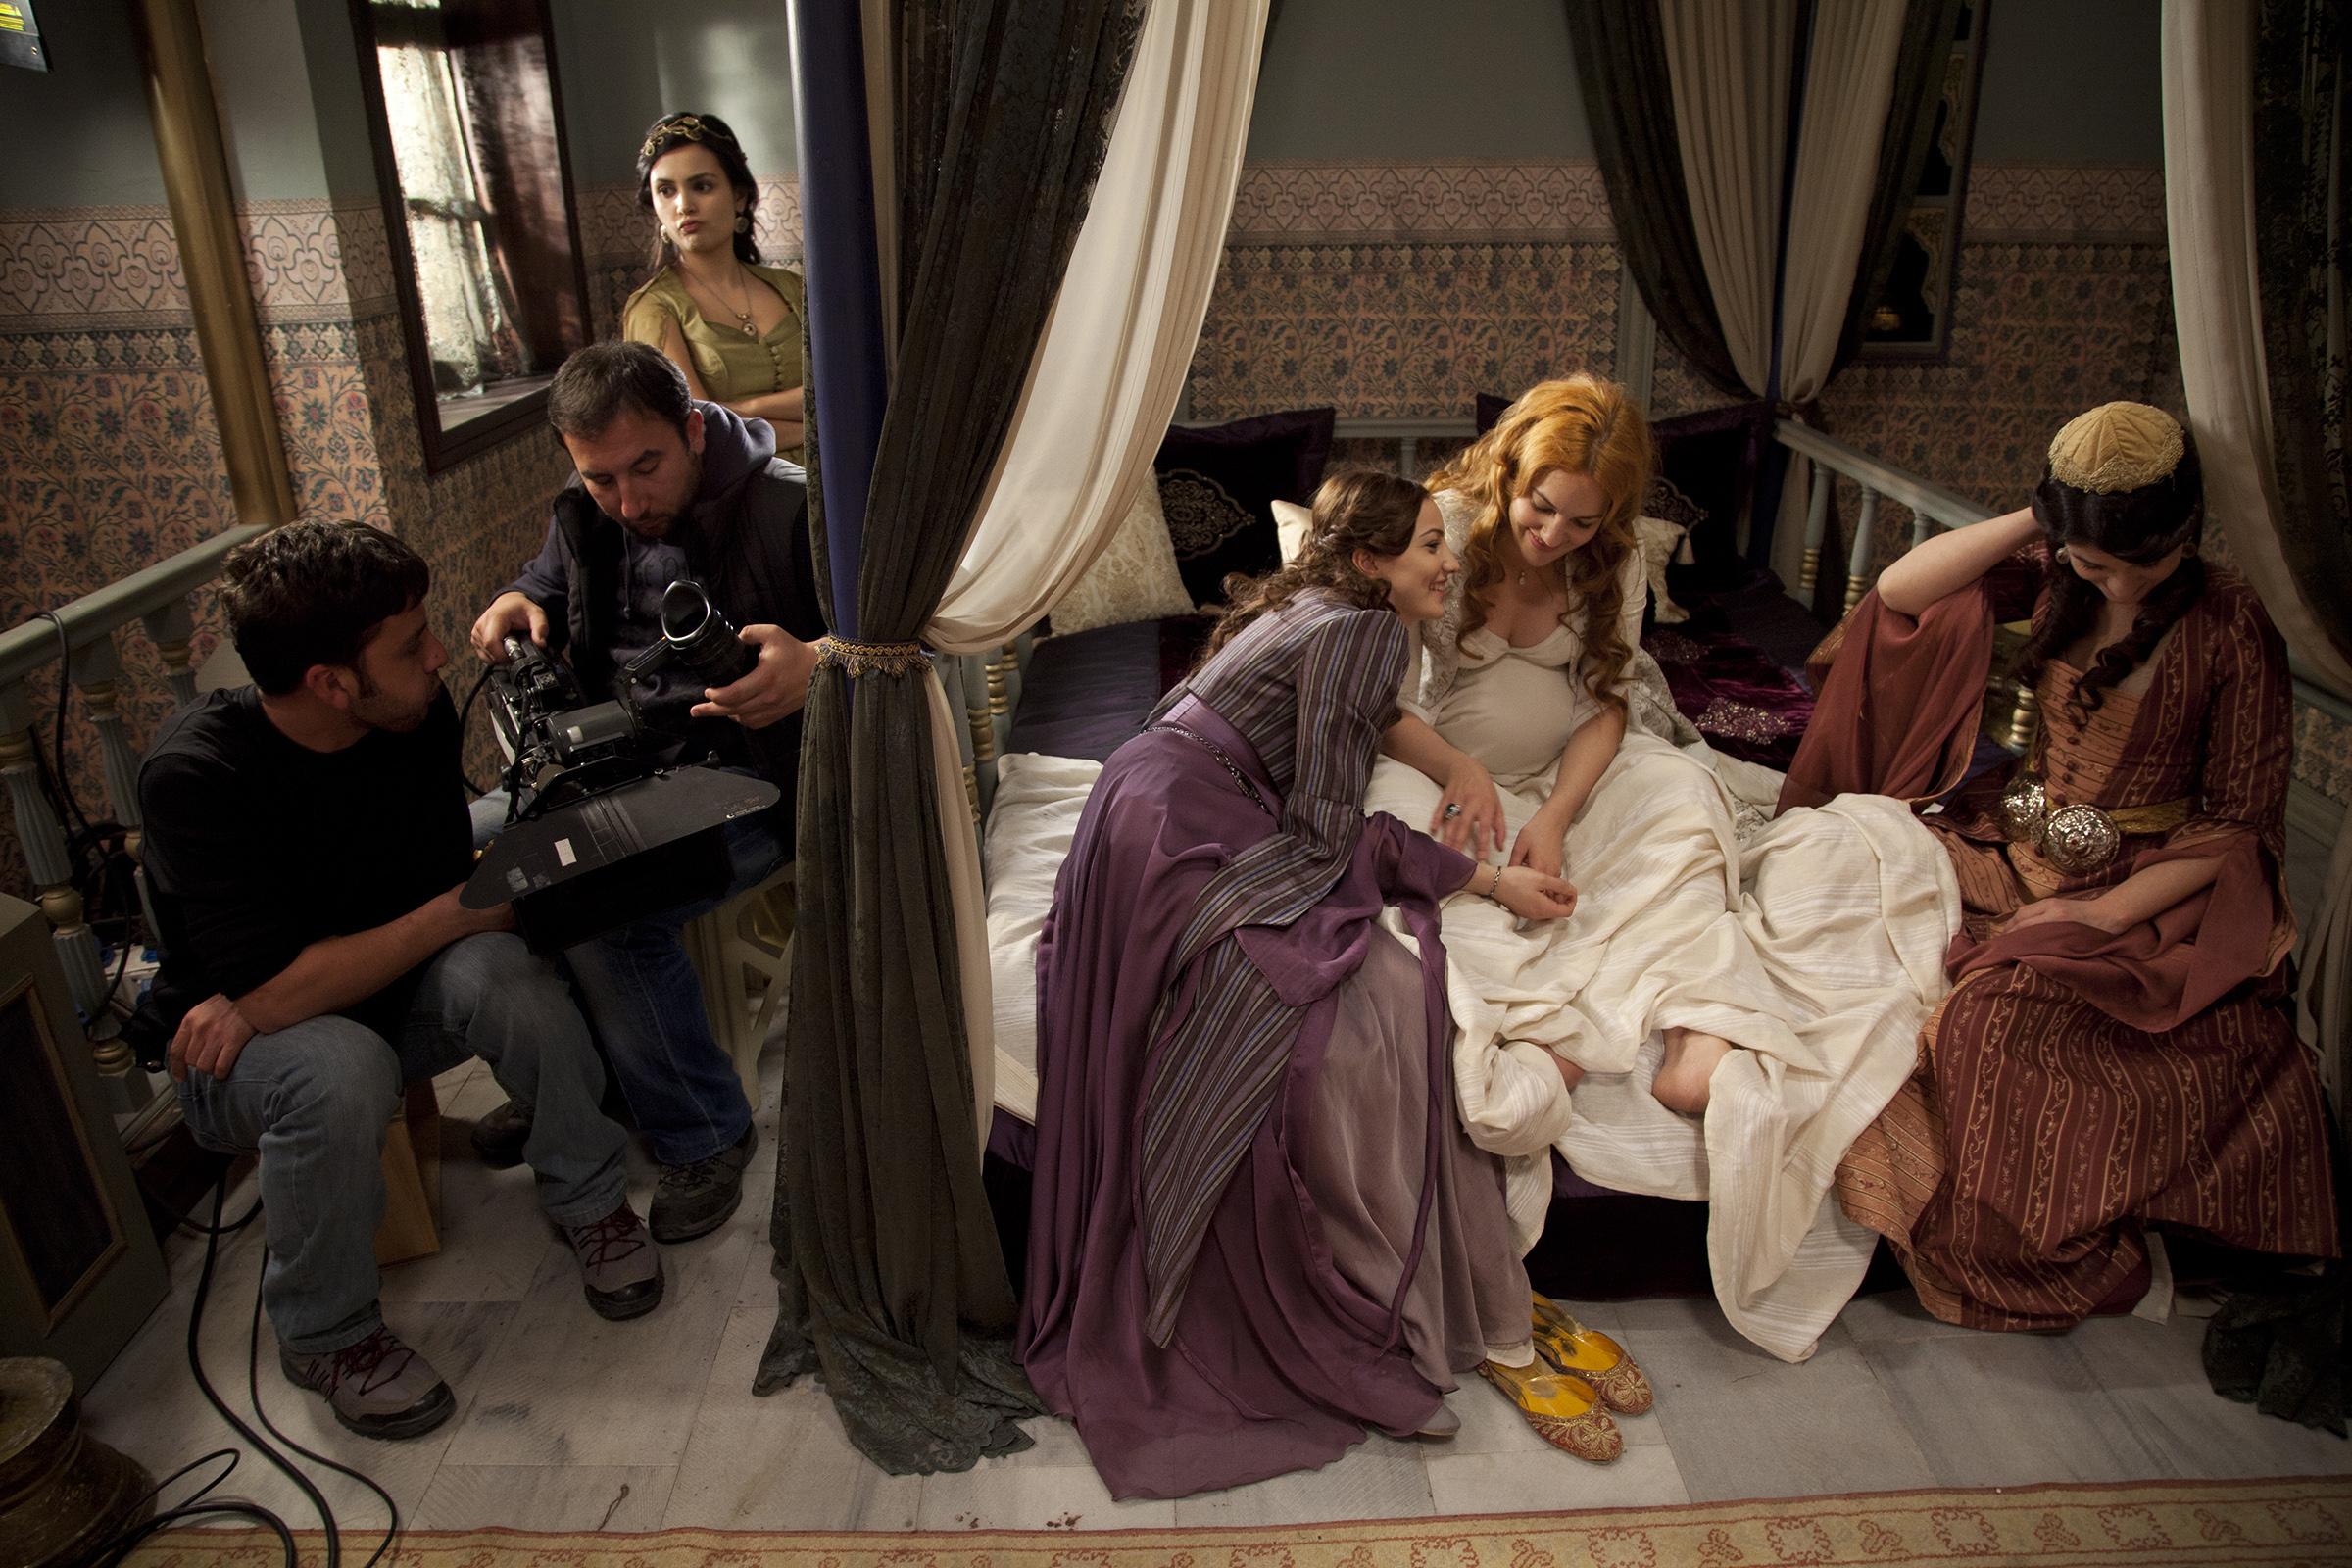 Actress Meryem Uzerli, in white, the main actress on the show  Muhteseni Yuzyil,  or The Magnificent Century, jokes with her colleagues in between takes on the set in Istanbul, Turkey on March 16, 2011.